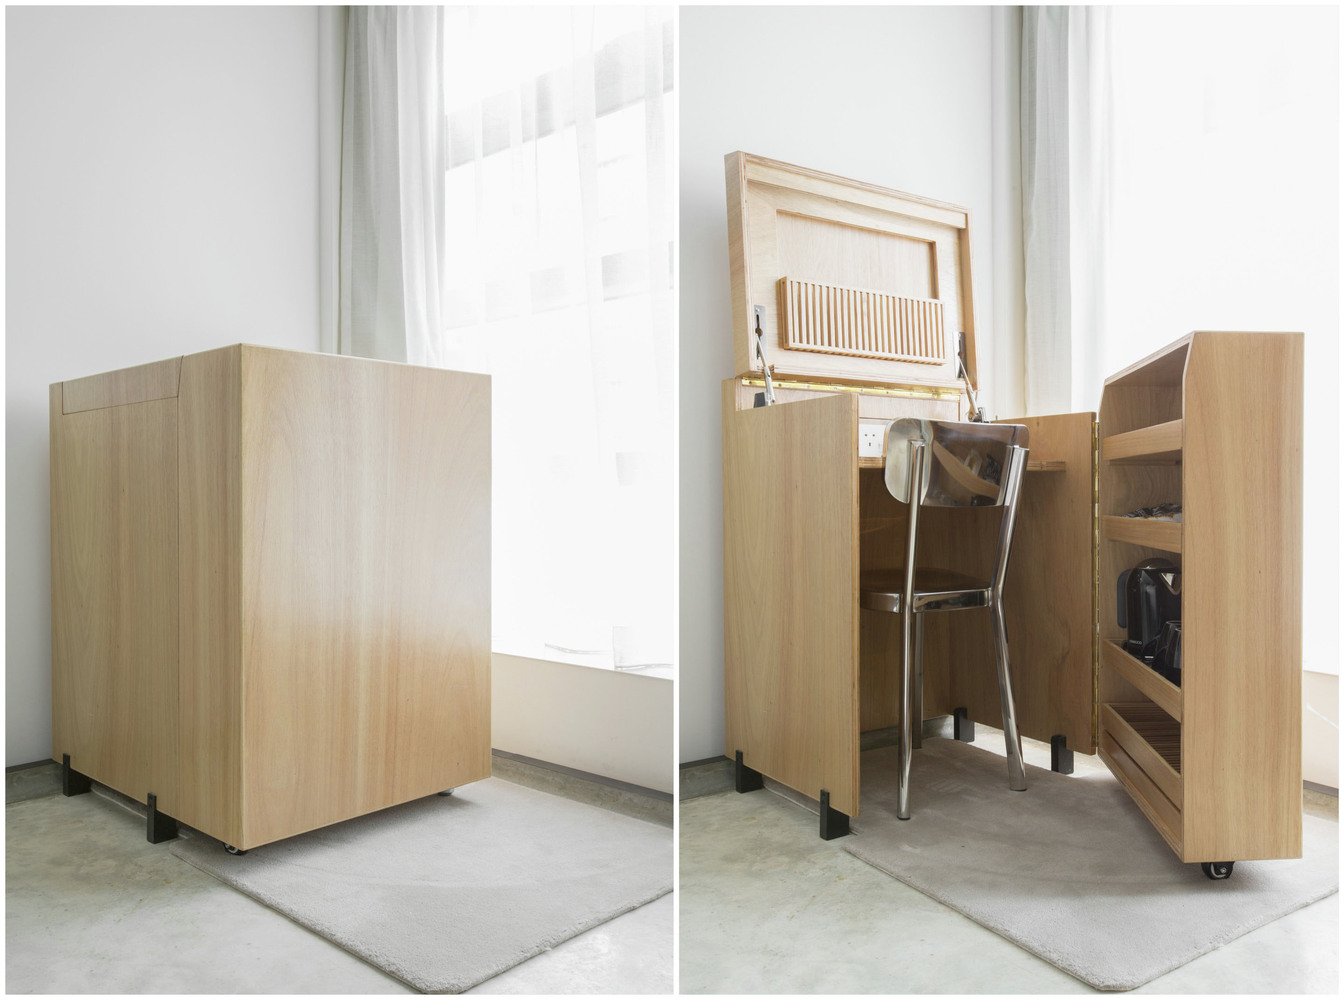 19_designsystems-tuve_room-deluxe-cabinet_DM